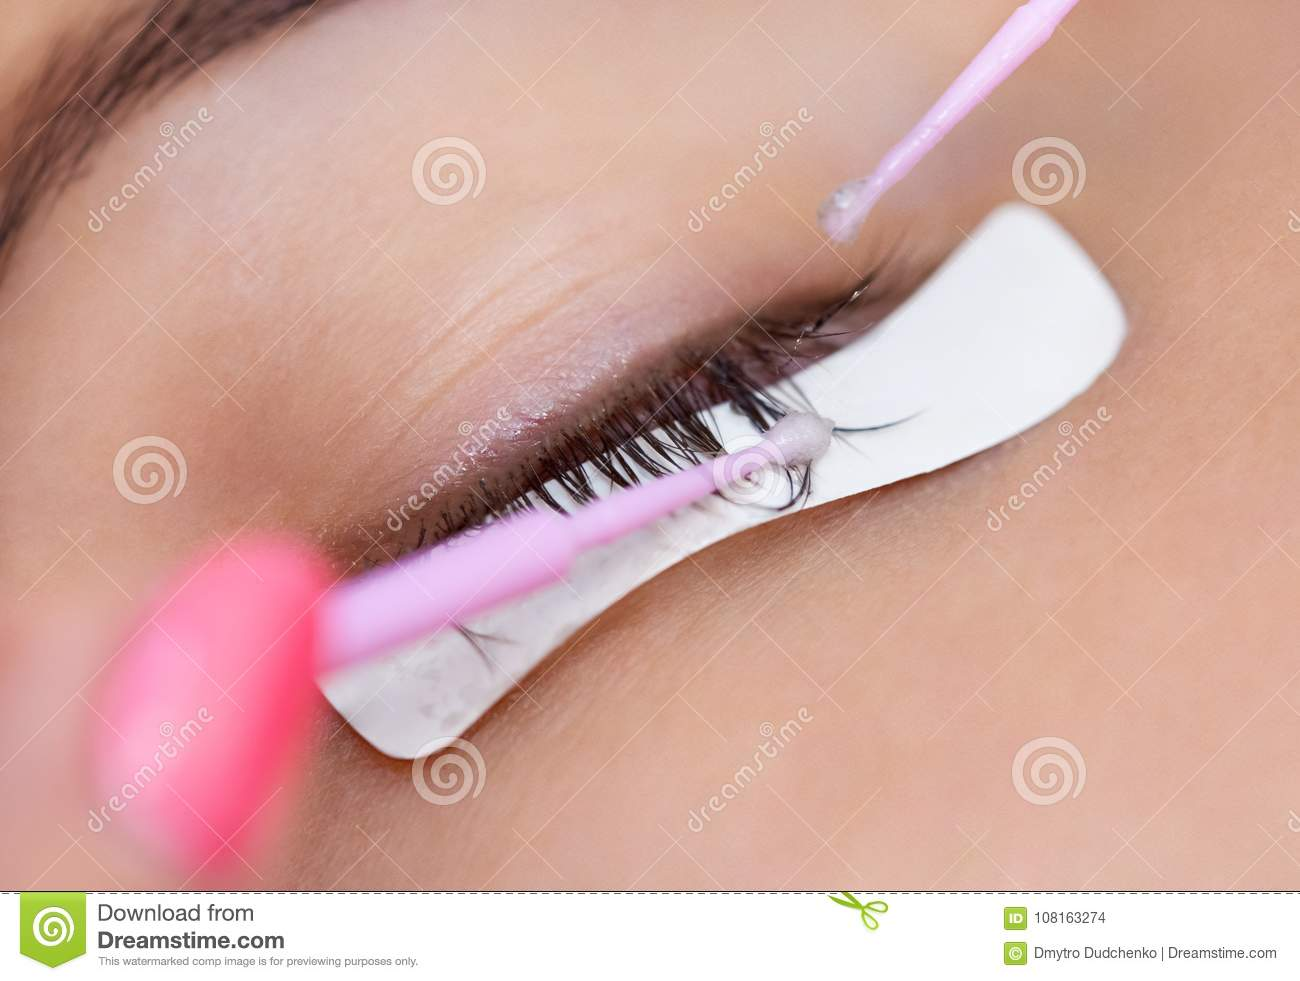 Eyelash removal procedure close up. Beautiful Woman with long lashes in a beauty salon.